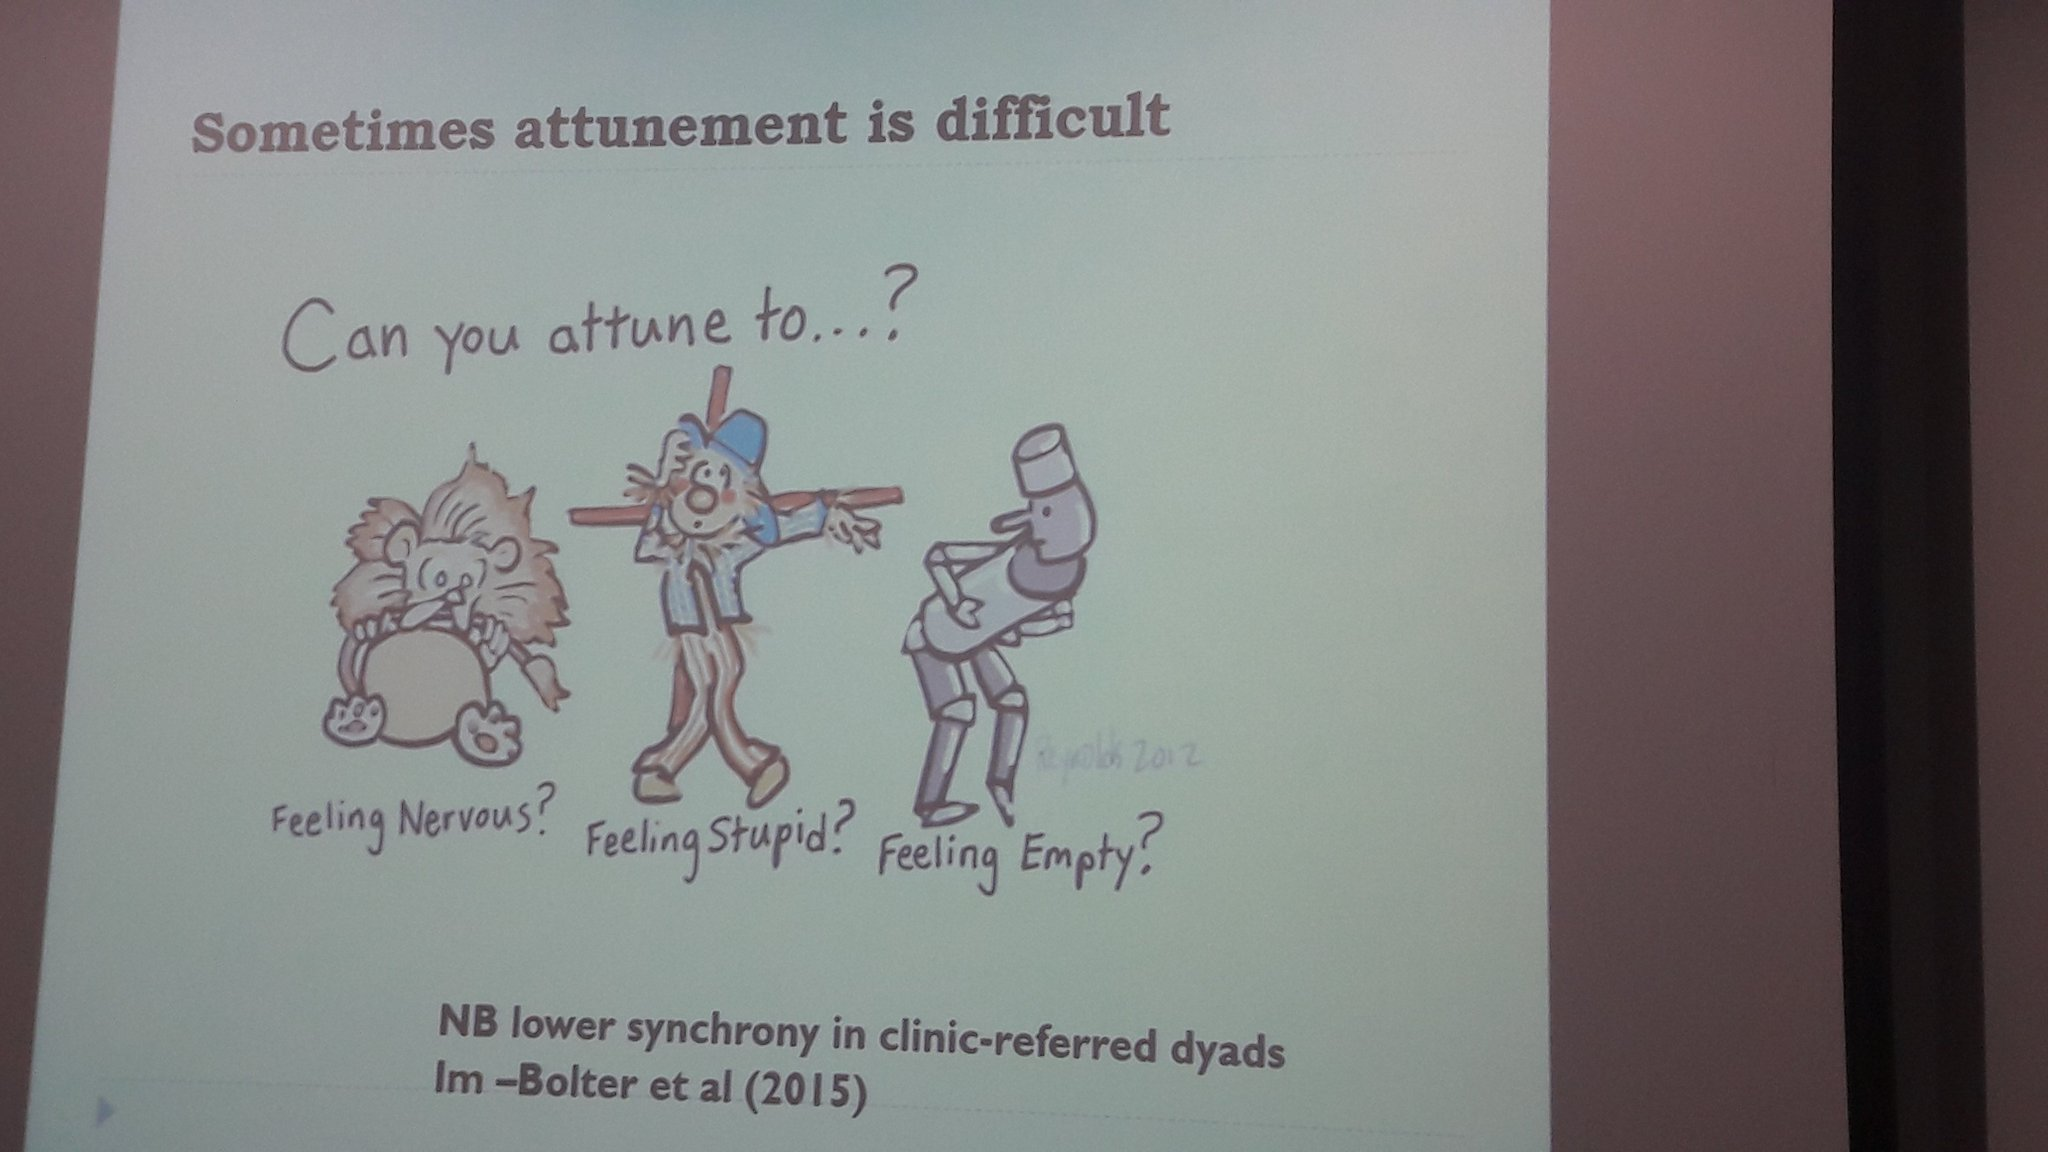 @Melaniespeechie: Our own histories may interrupt our attunement with others, also lower synchrony in clinic-referred dyads #naplic17 https://t.co/4Dy0Hz9S3e